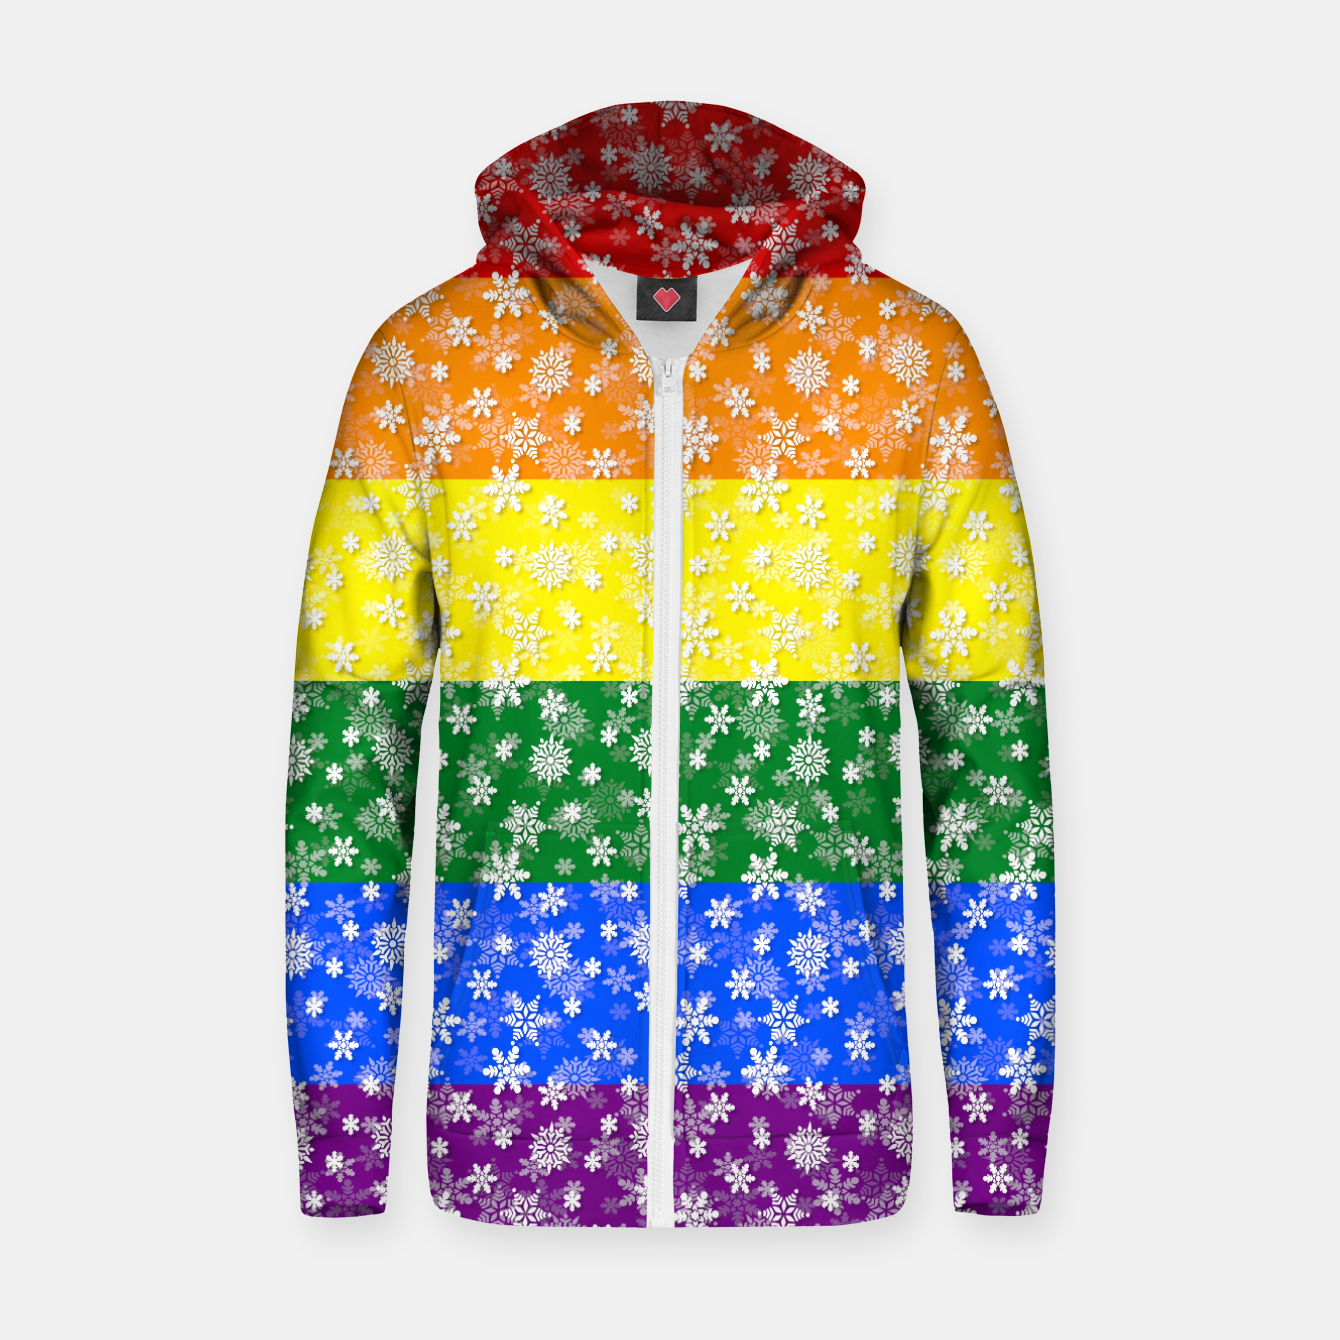 d6f9d5f212 Christmas Pride Bright Festive Rainbow Snowflakes Zip up hoodie ...